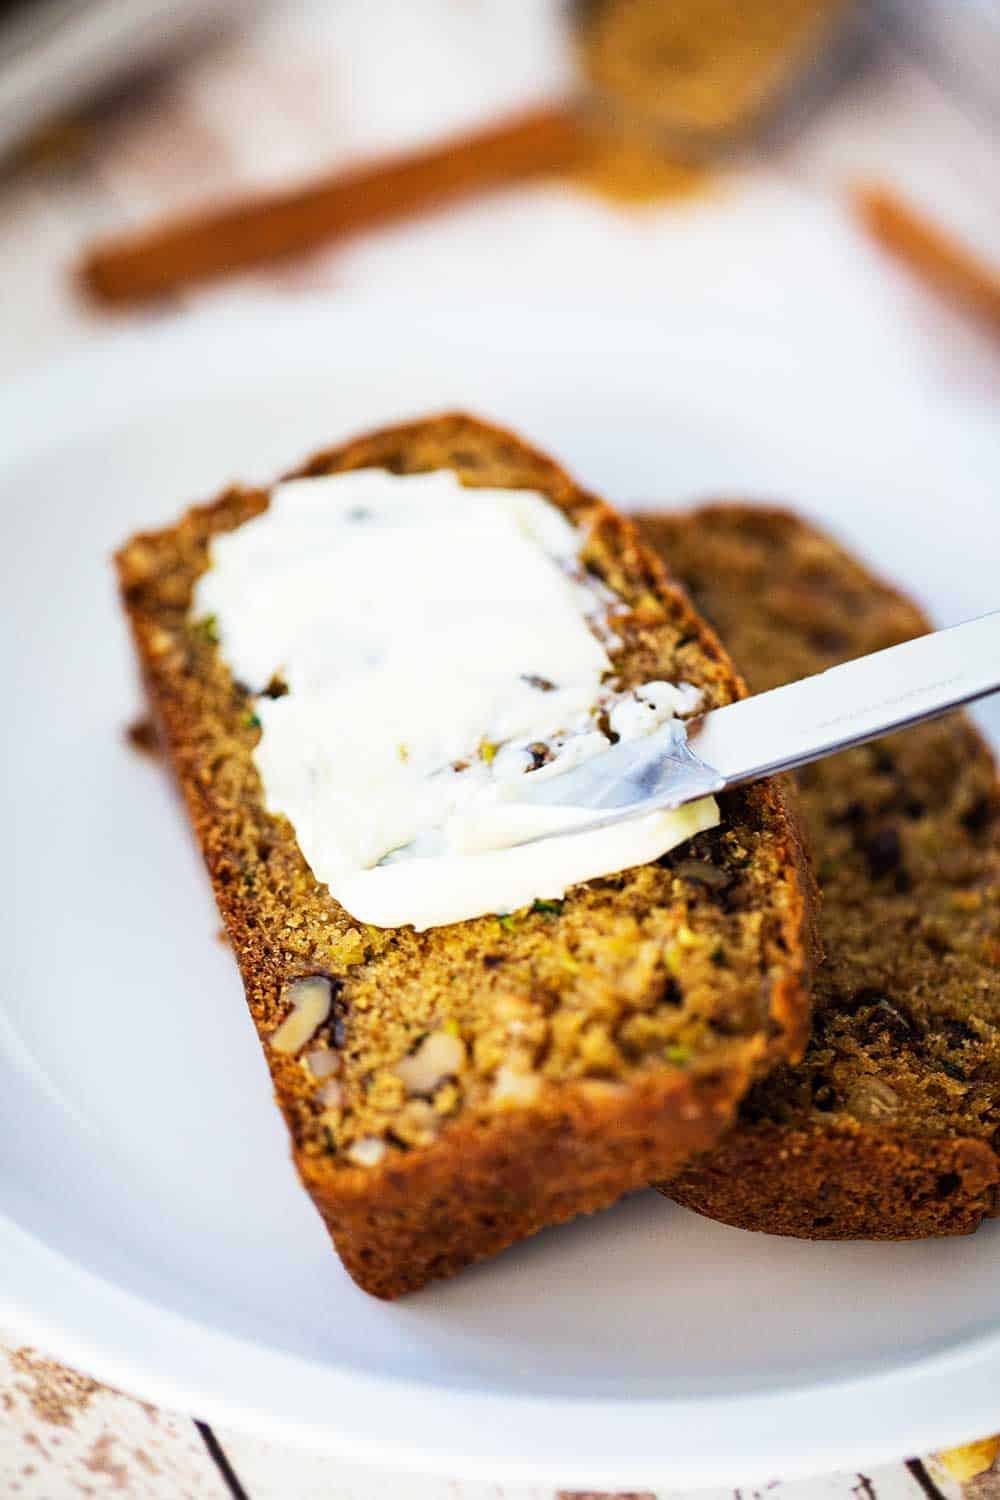 Two slices of zucchini bread being smeared with softened butter all sitting on a white plate.